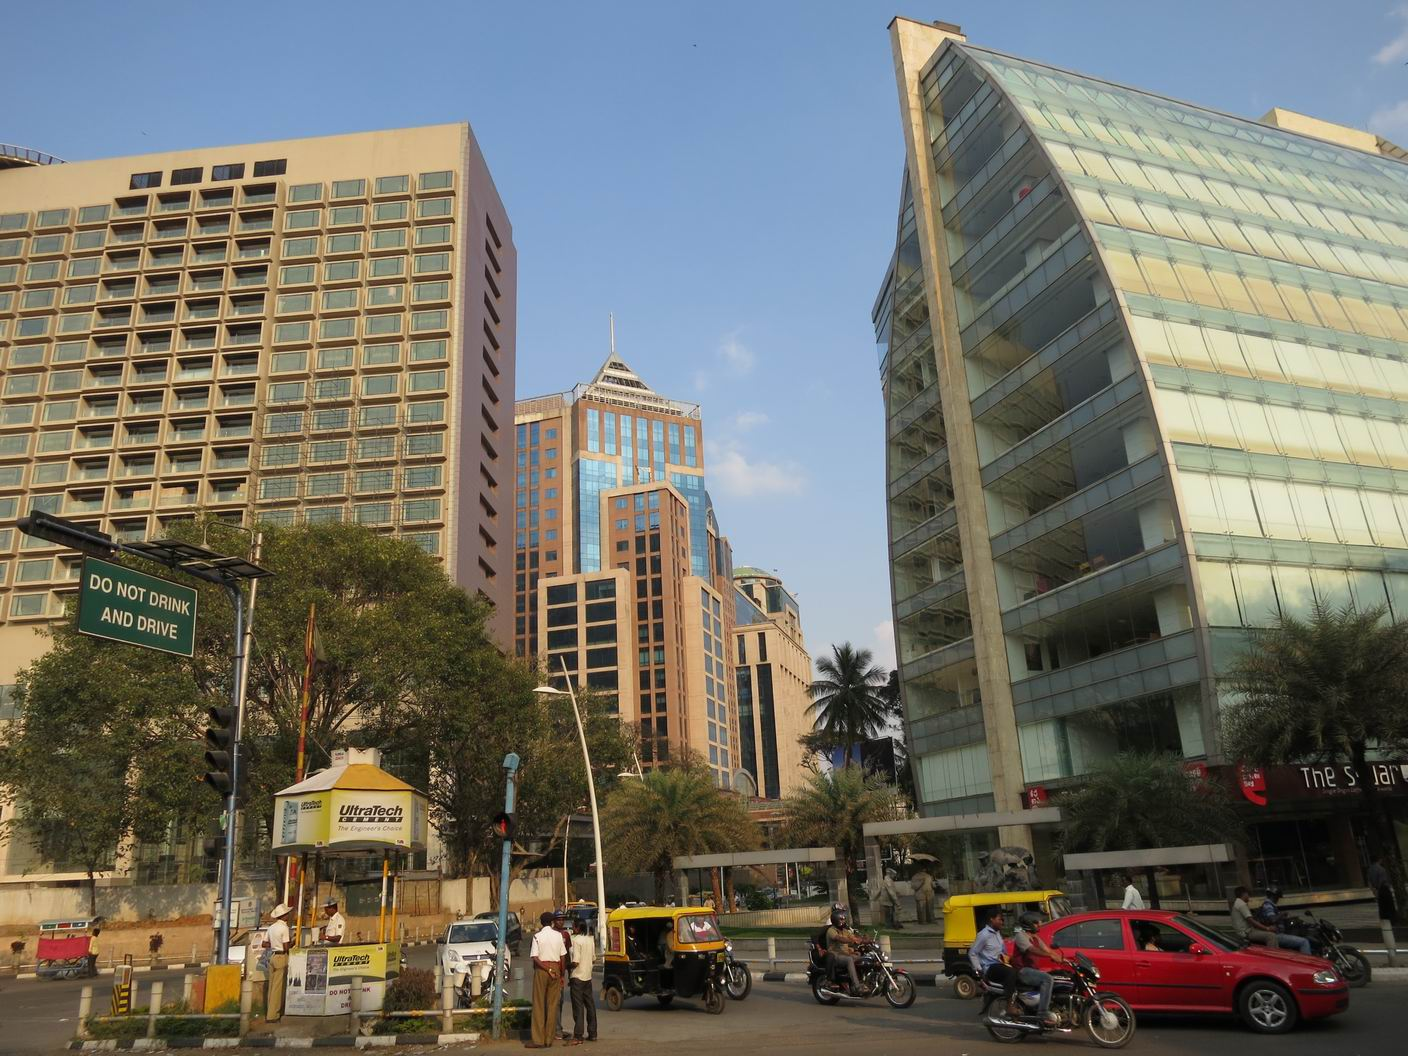 130219-Travel-Day-931-2-High-Rise-Buildings-in-Bangalore-India